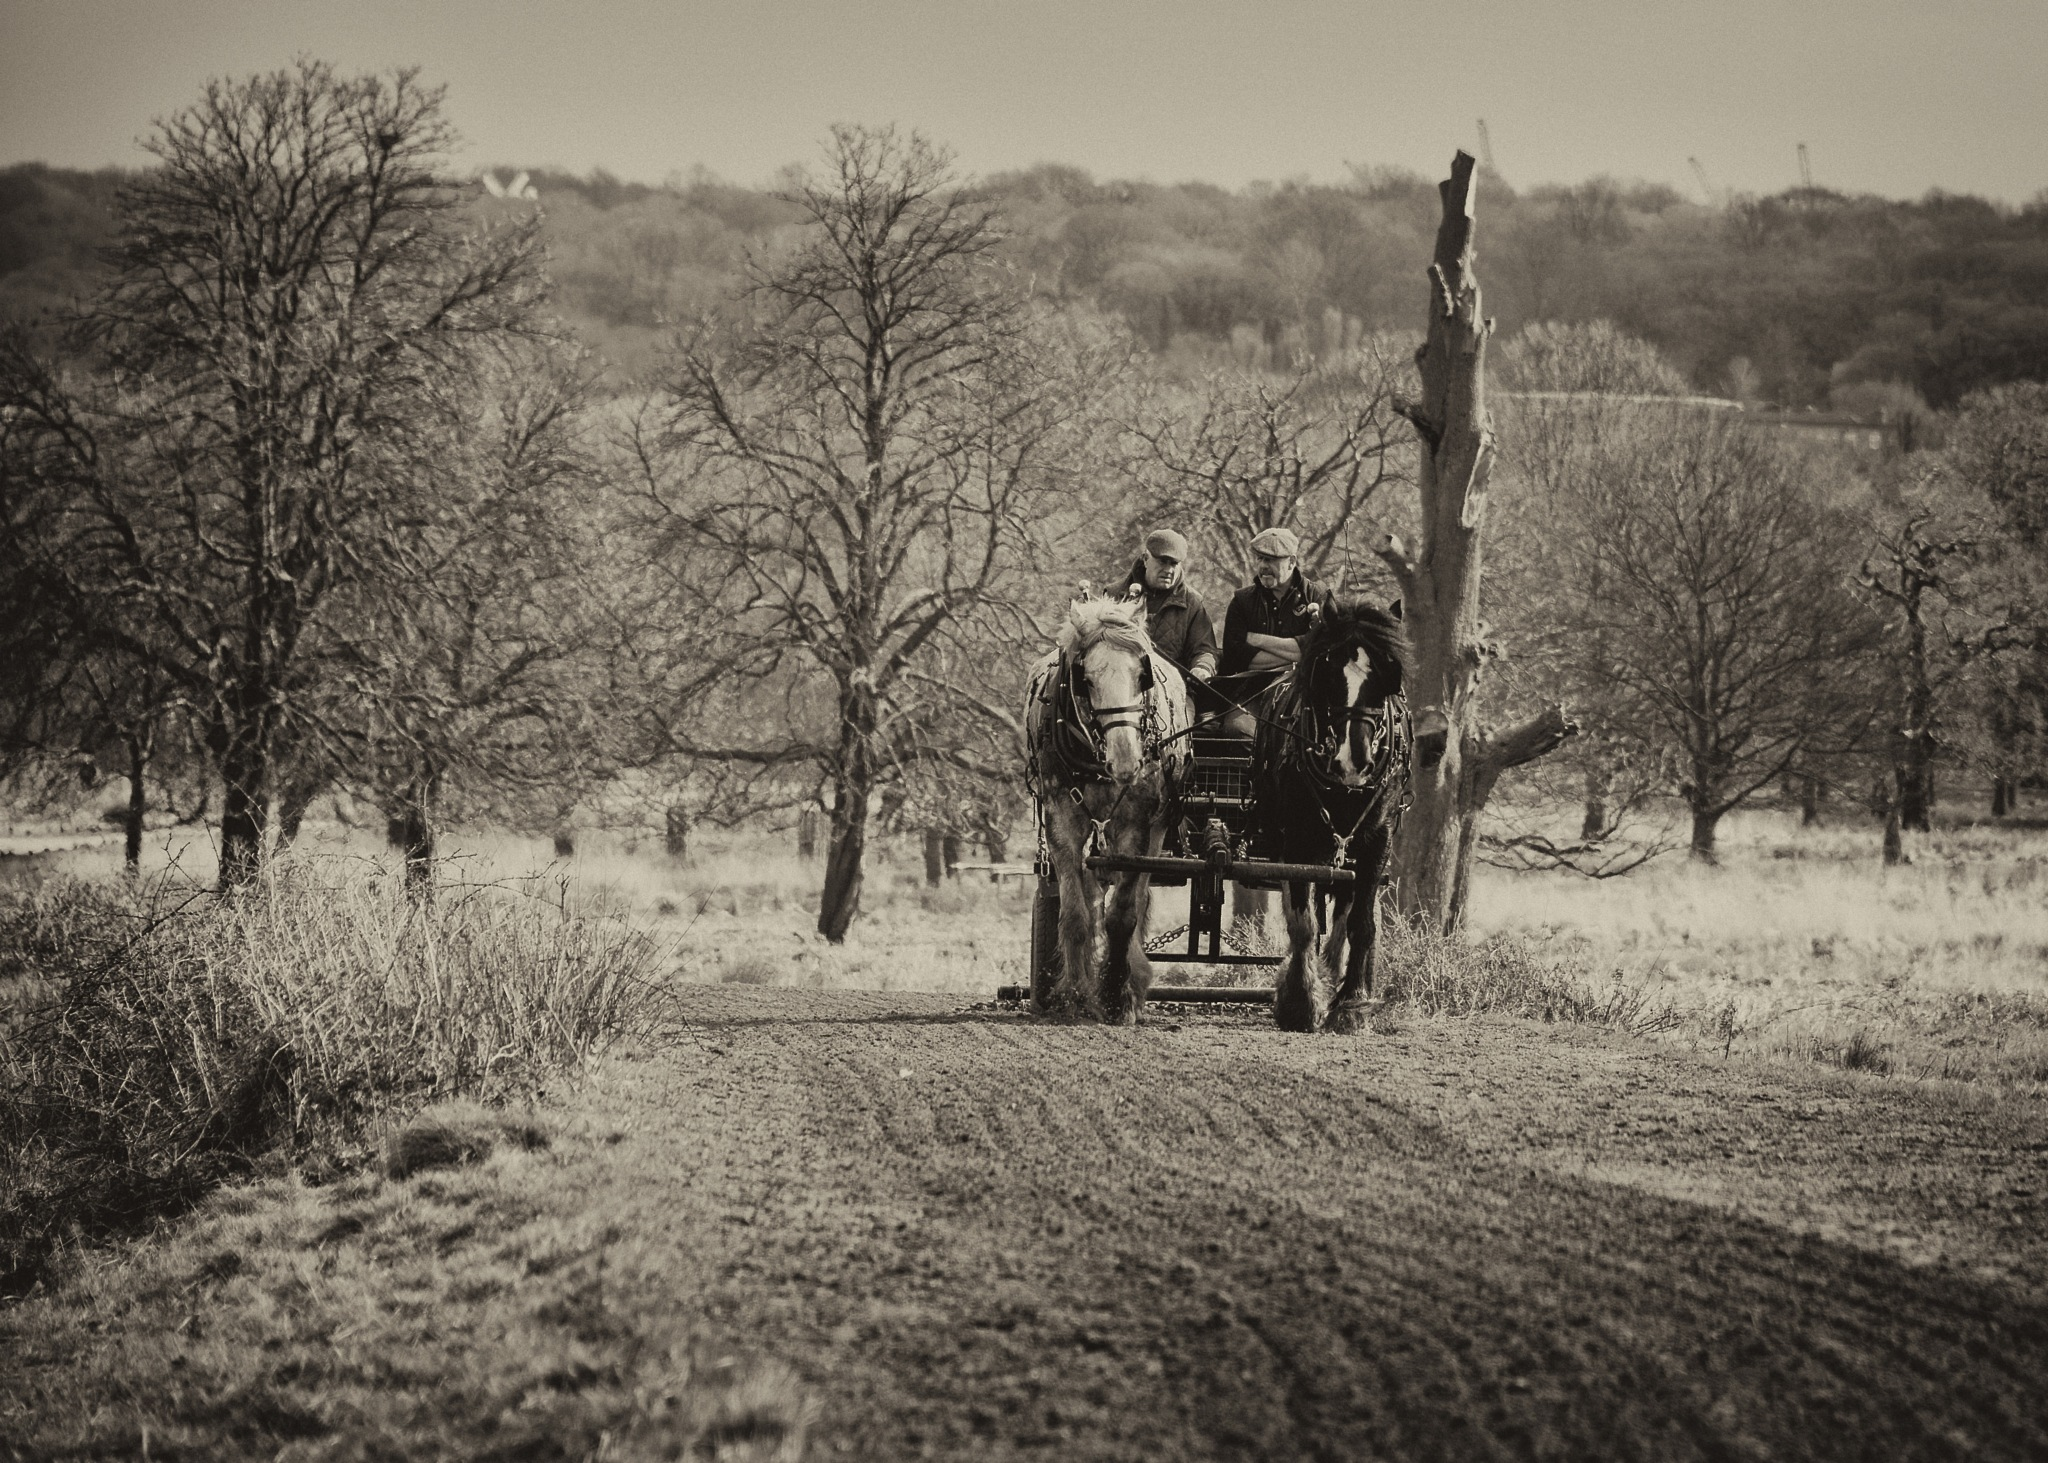 Shire Horses at Work by BrianS